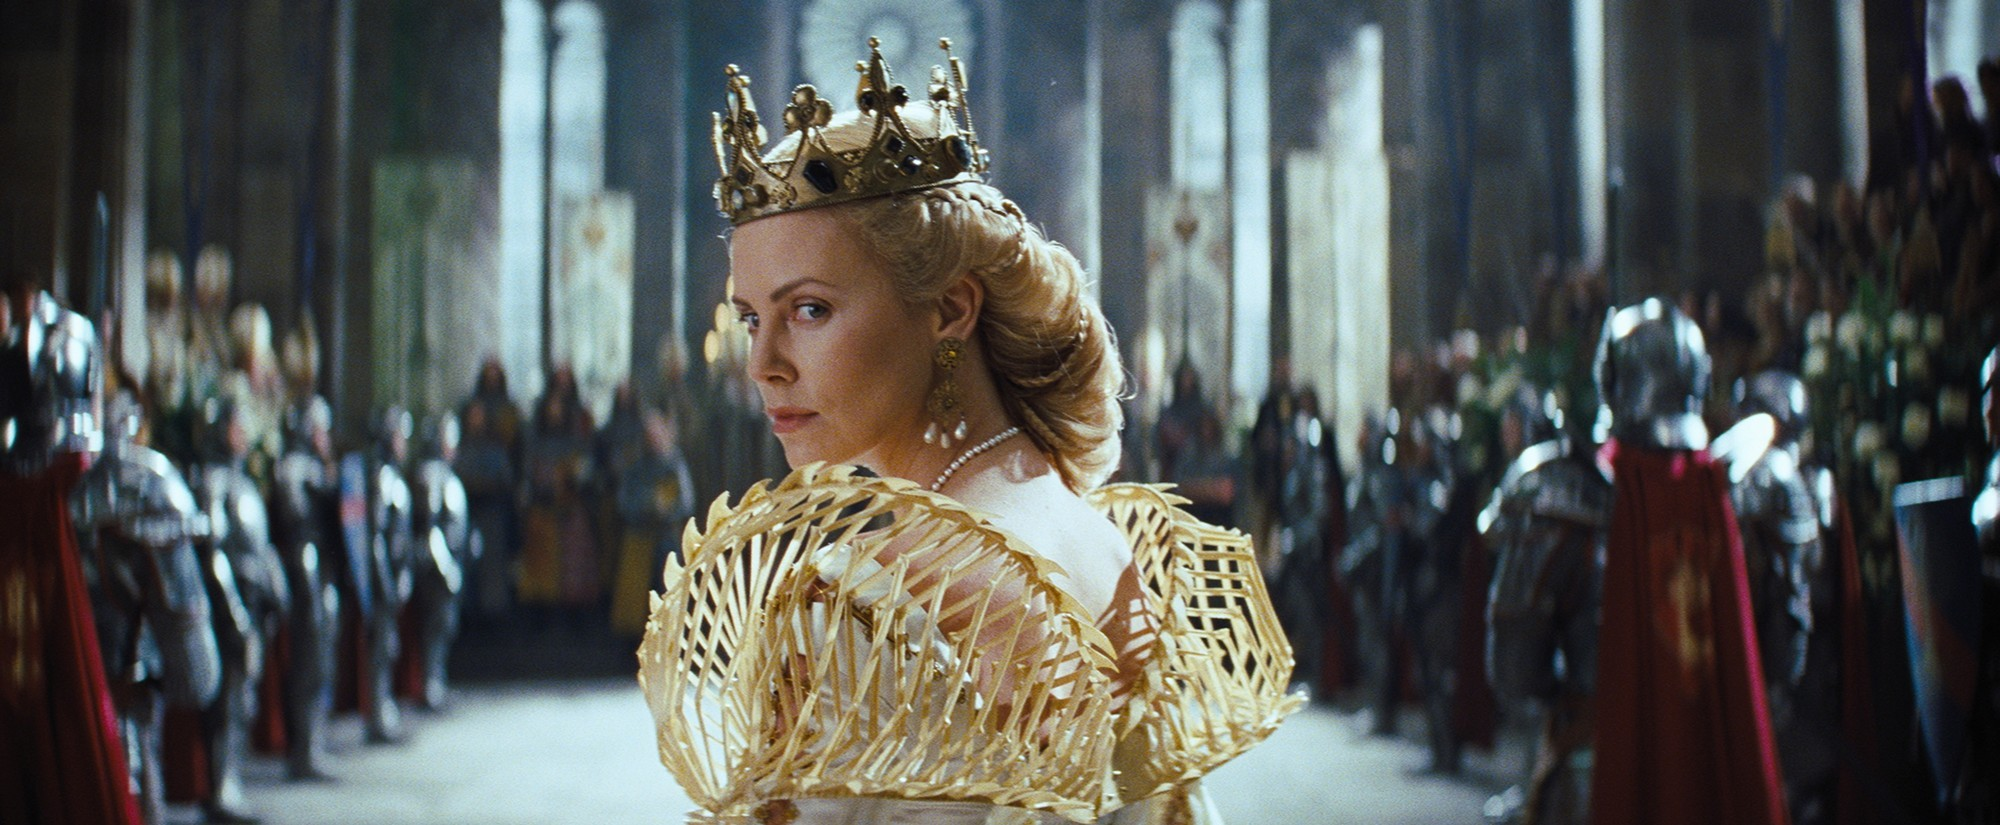 snow white and the huntsman queens hairstyle